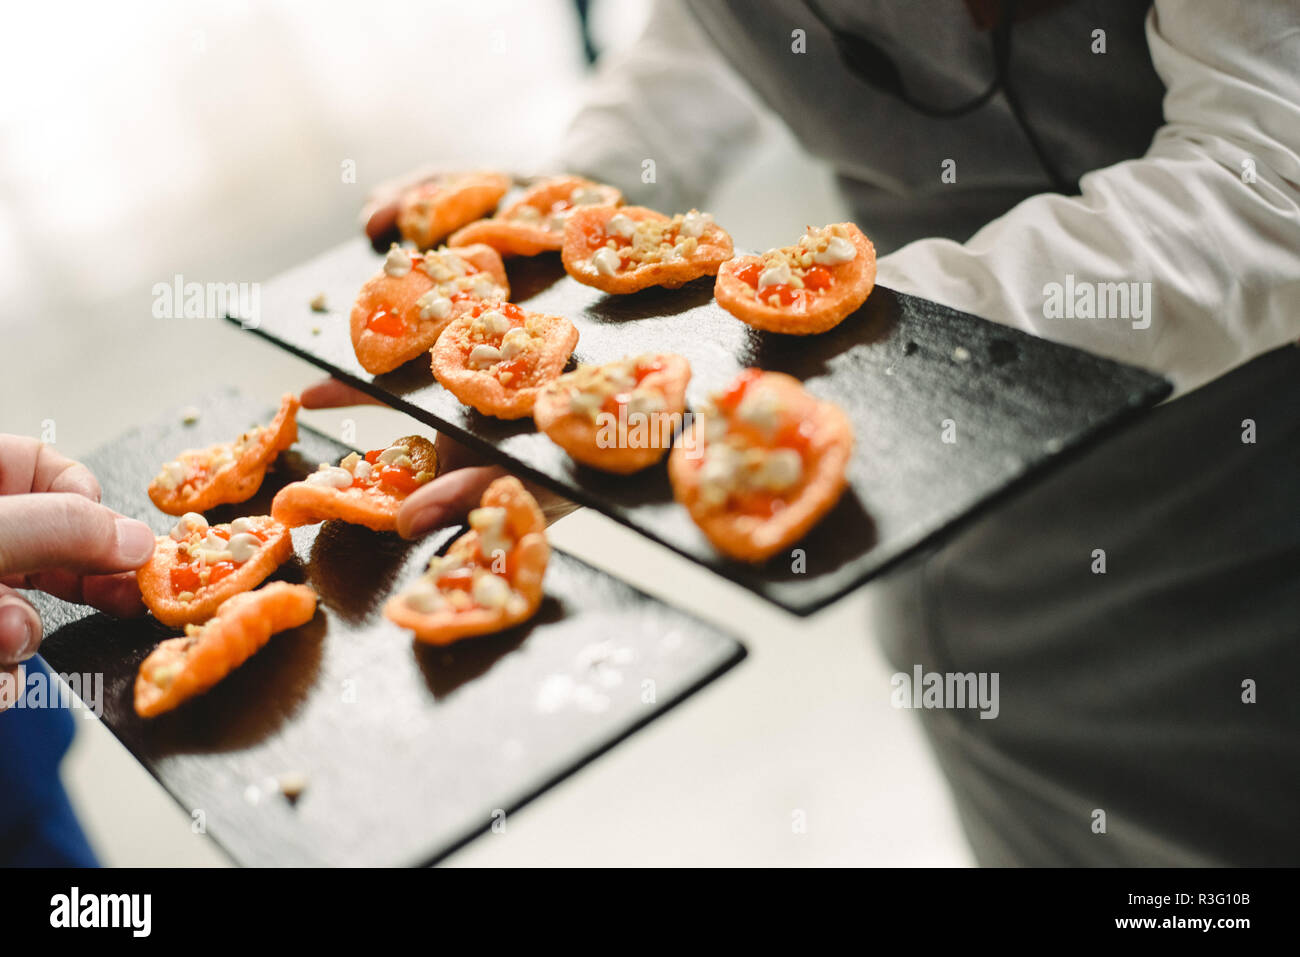 wedding food ideas appetizers Stock Photo